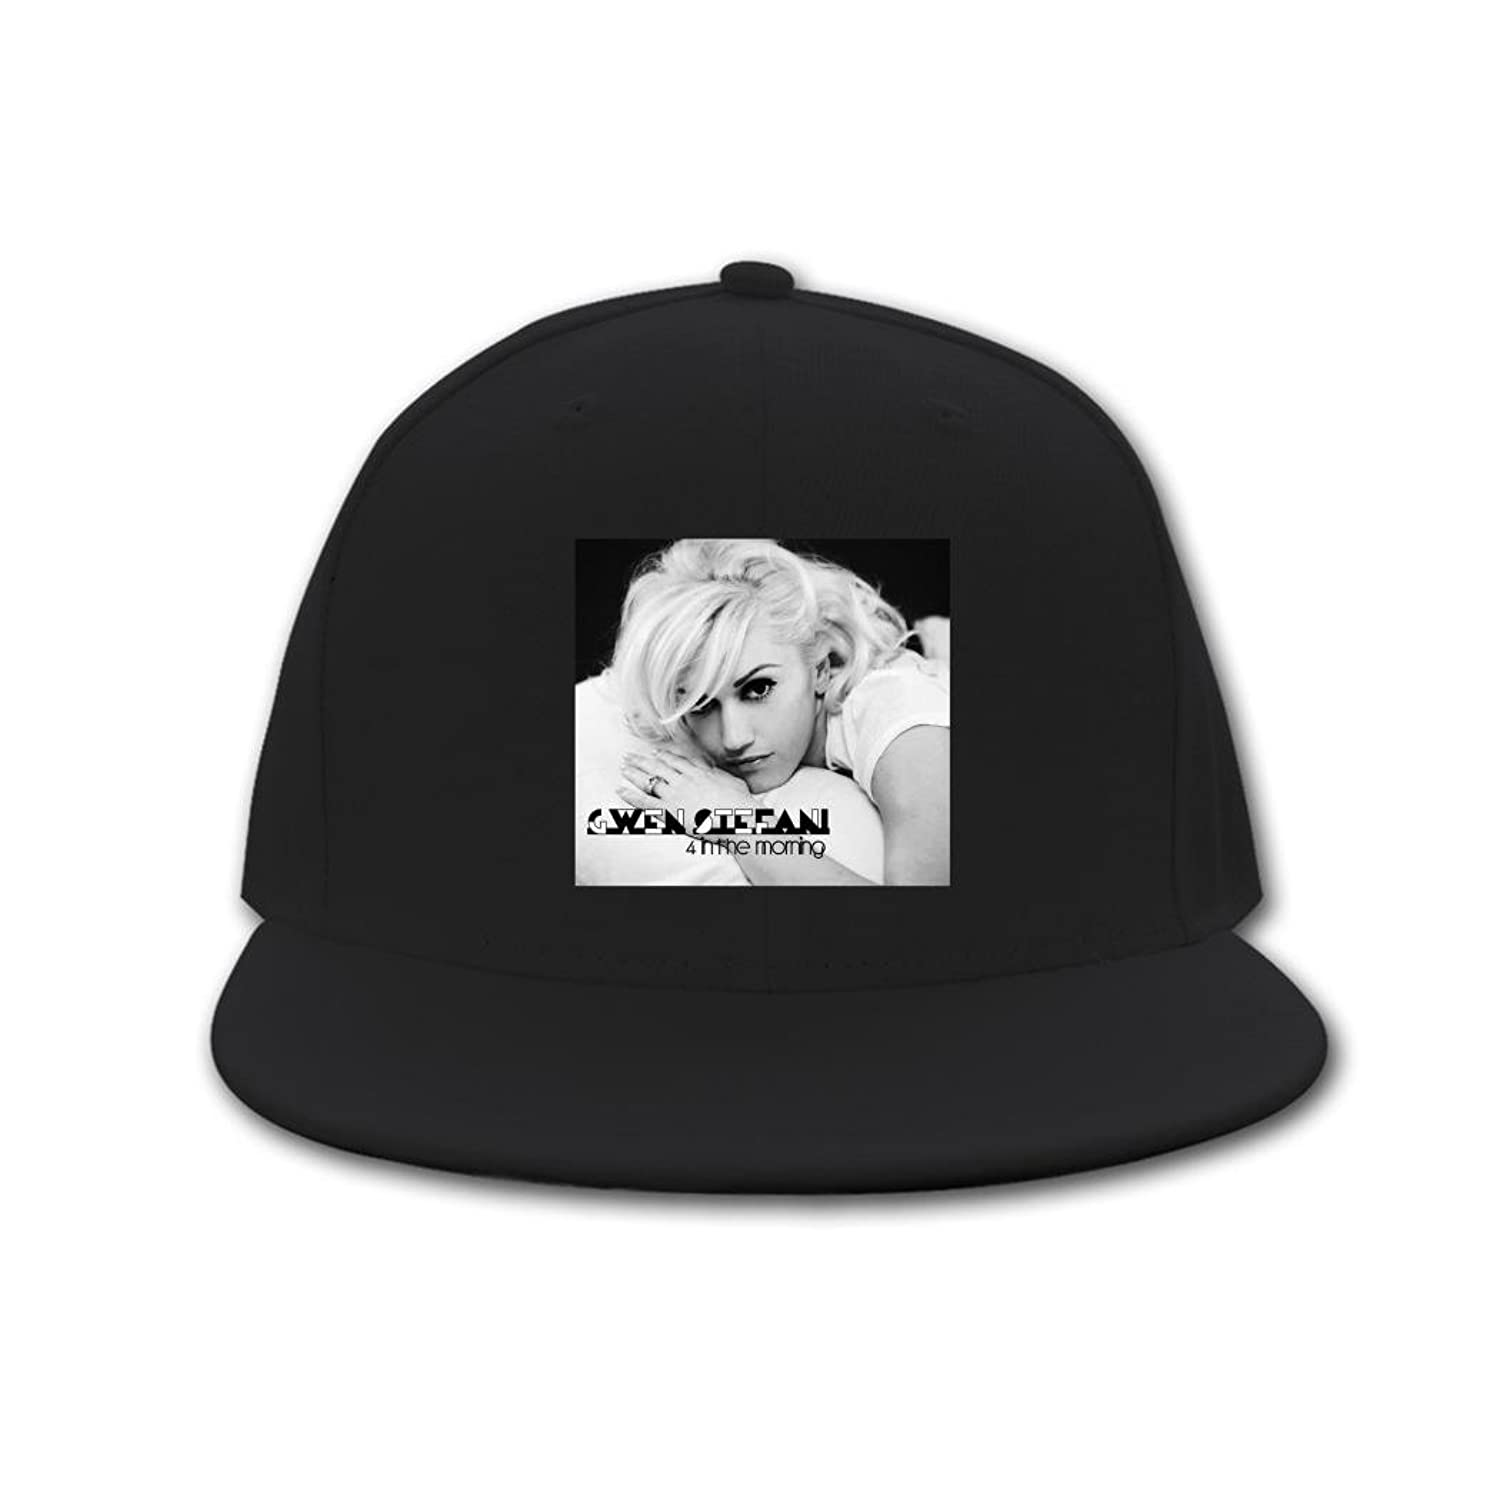 LLY dope Gwen Stefan poster Opeeda Adjustable Hip Hop Hats Caps For Men/Women